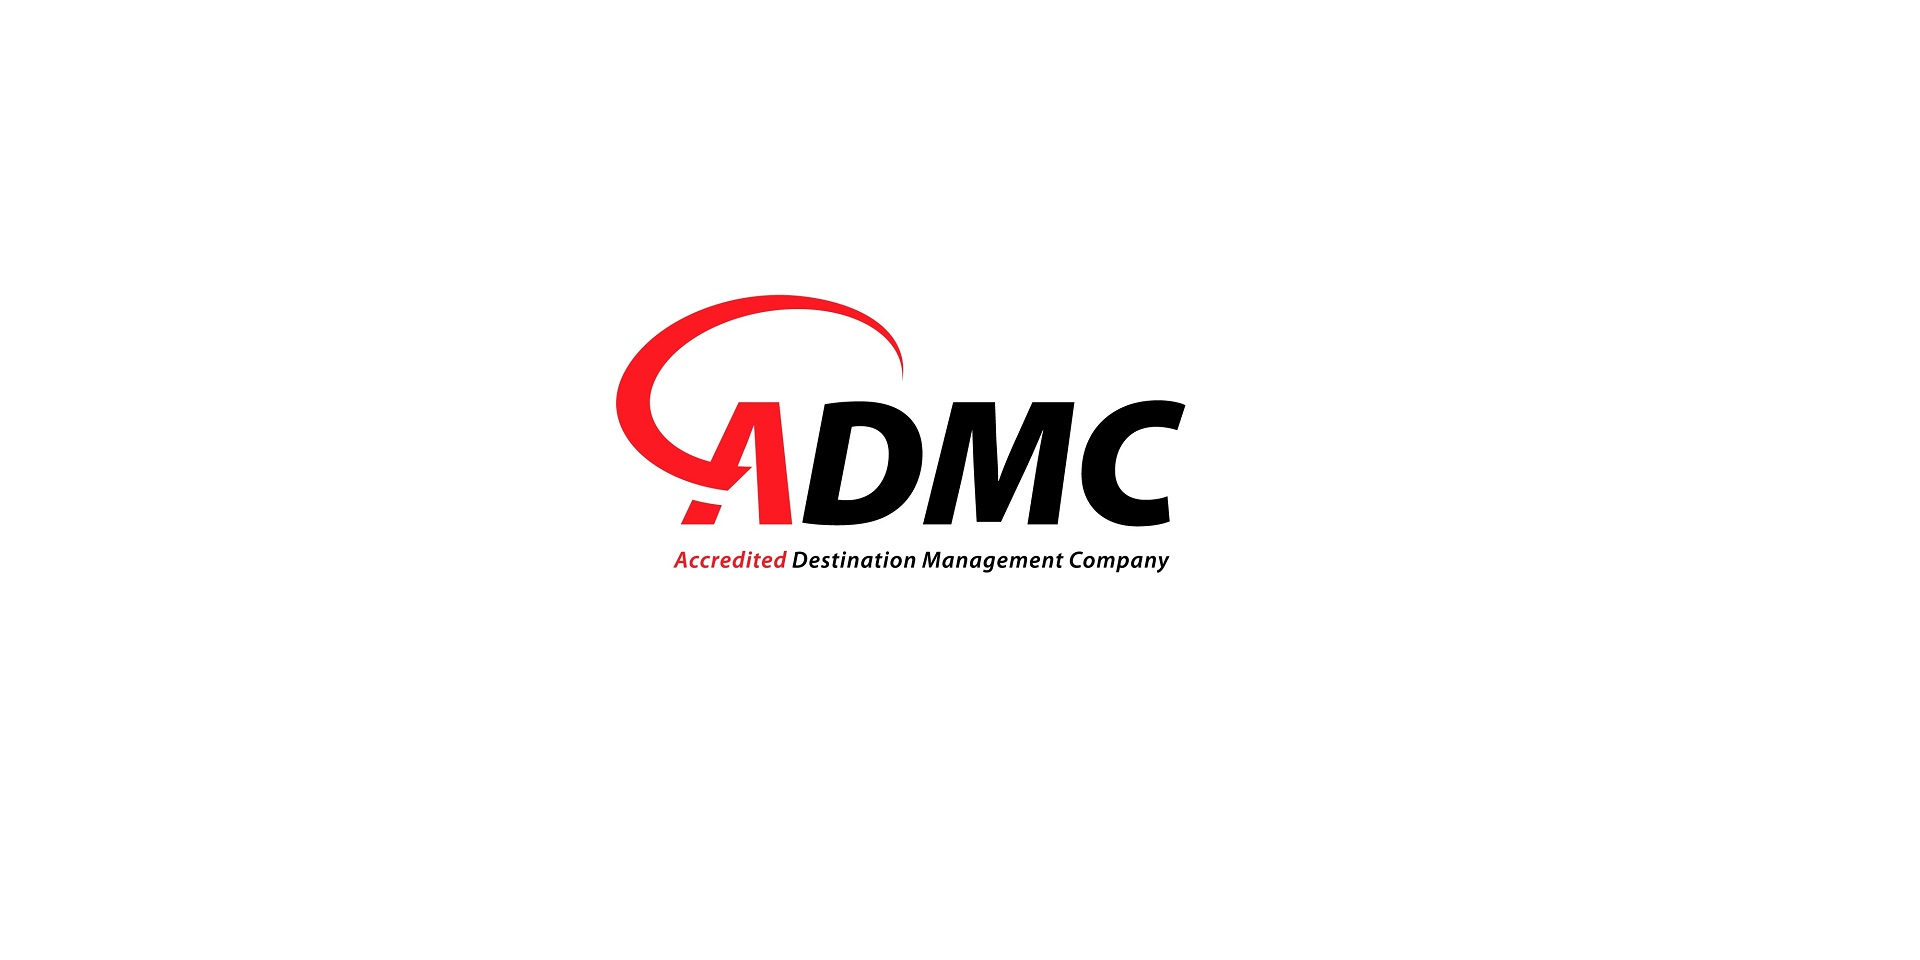 Accreditation (ADMC)